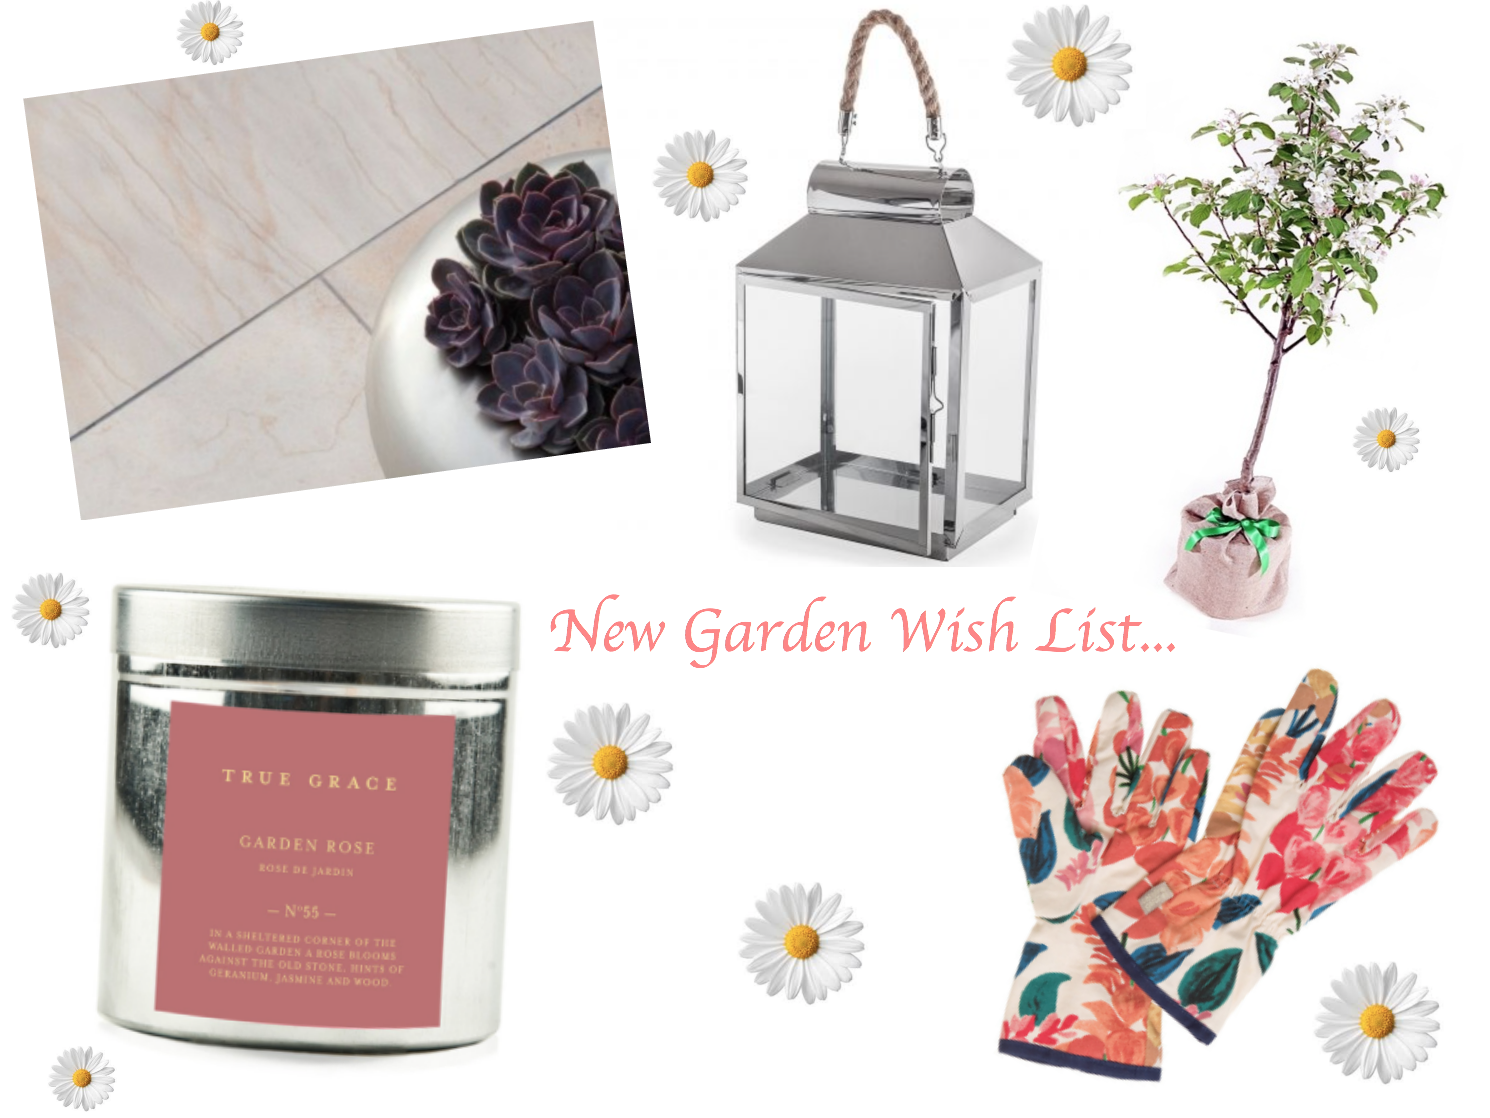 New Garden Wish List